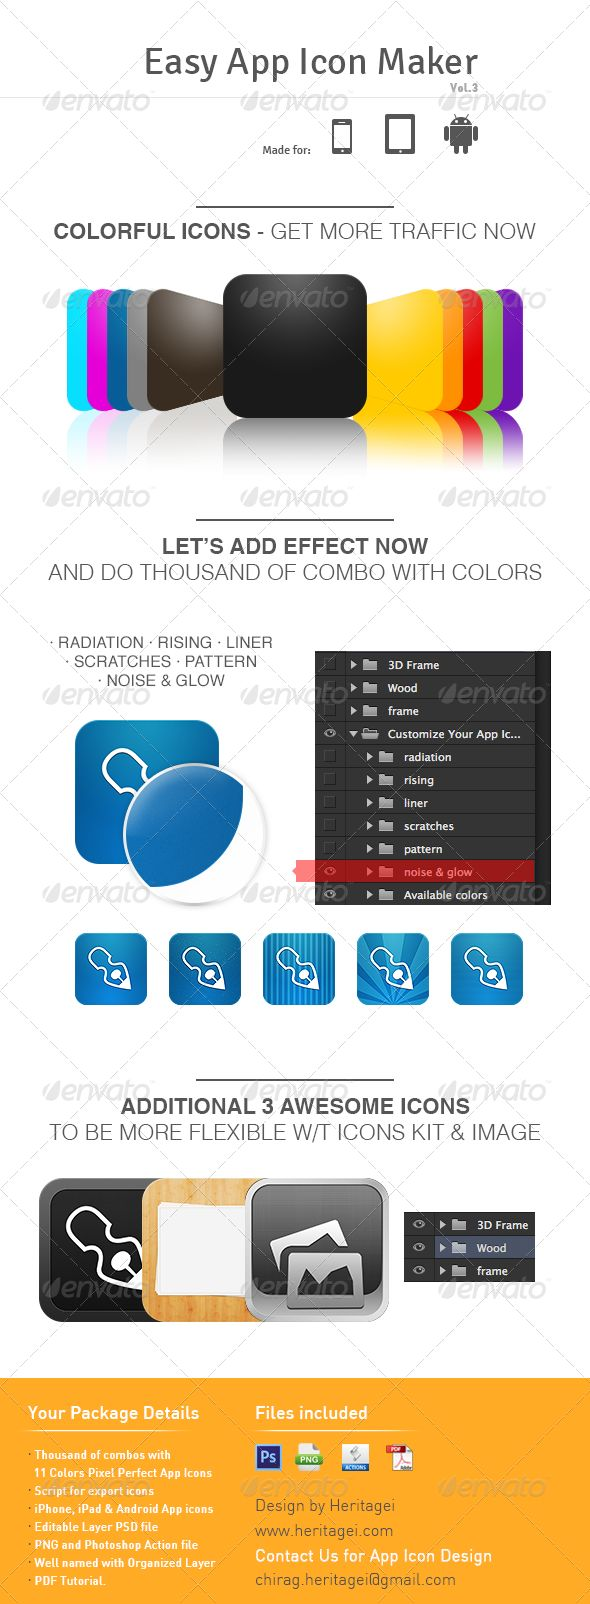 Easy App Icon Maker v 3.0 by uijunction Create thousand combo using 11 colorful icons and play with additional texture, pattern and effects. Easy App icon maker is really